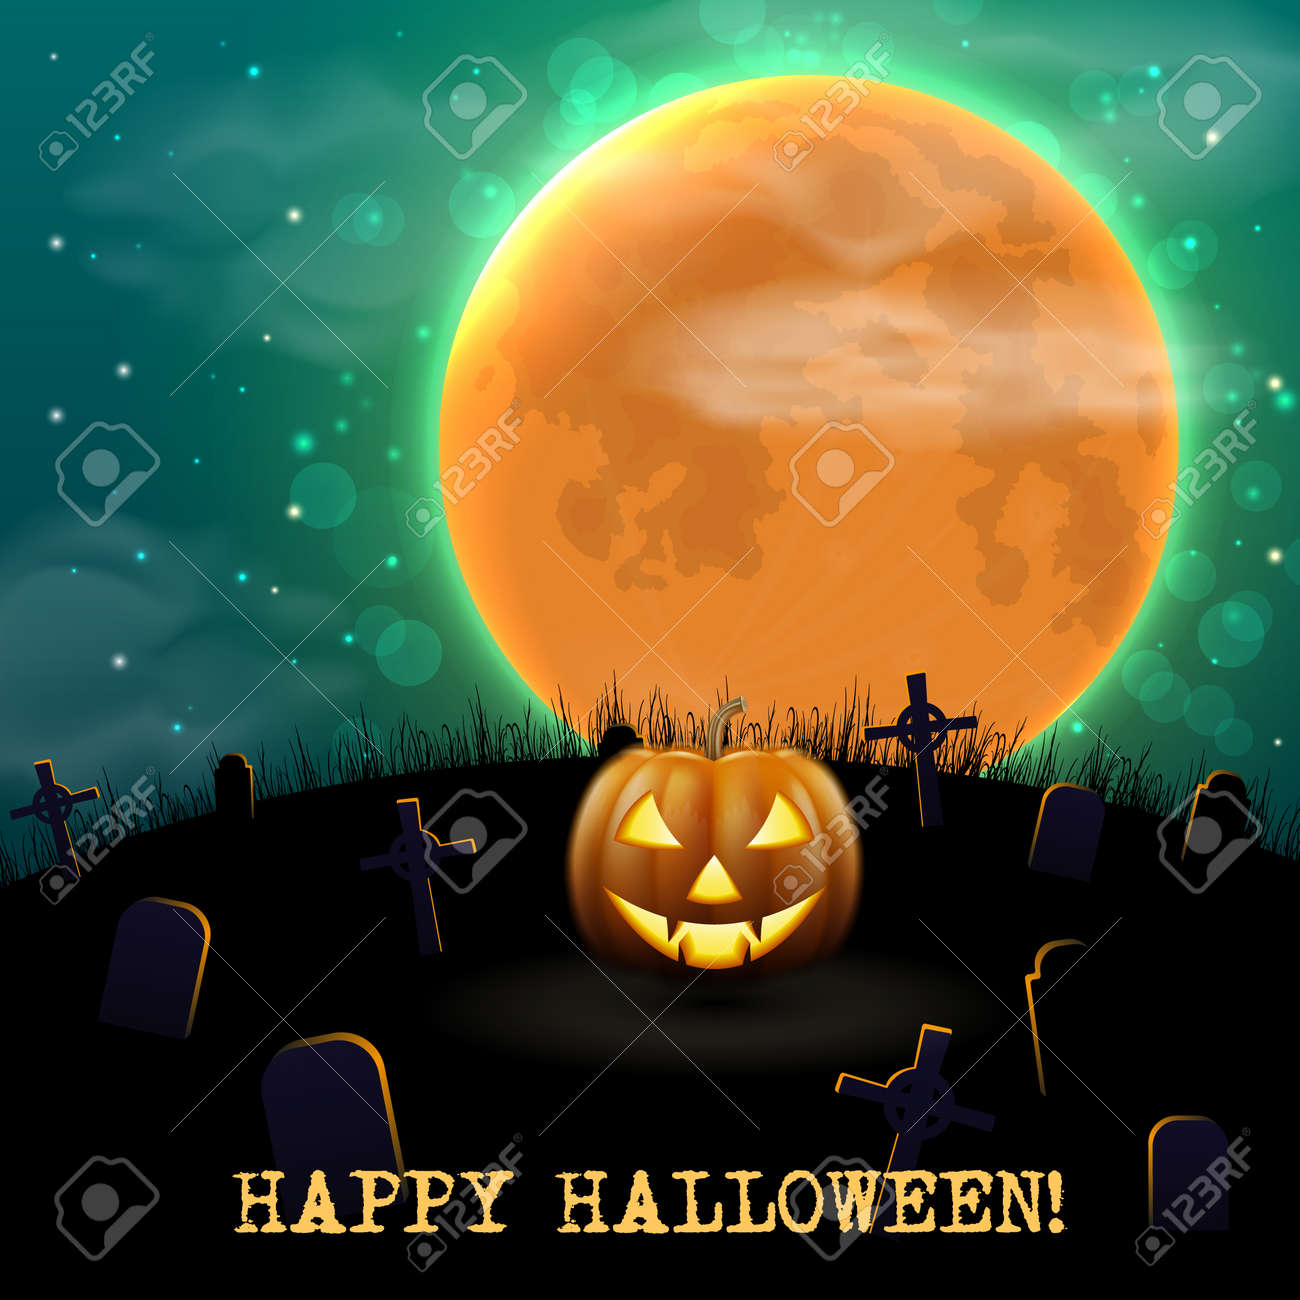 Happy Halloween night background with scary old graveyard and pumpkin - 109879652